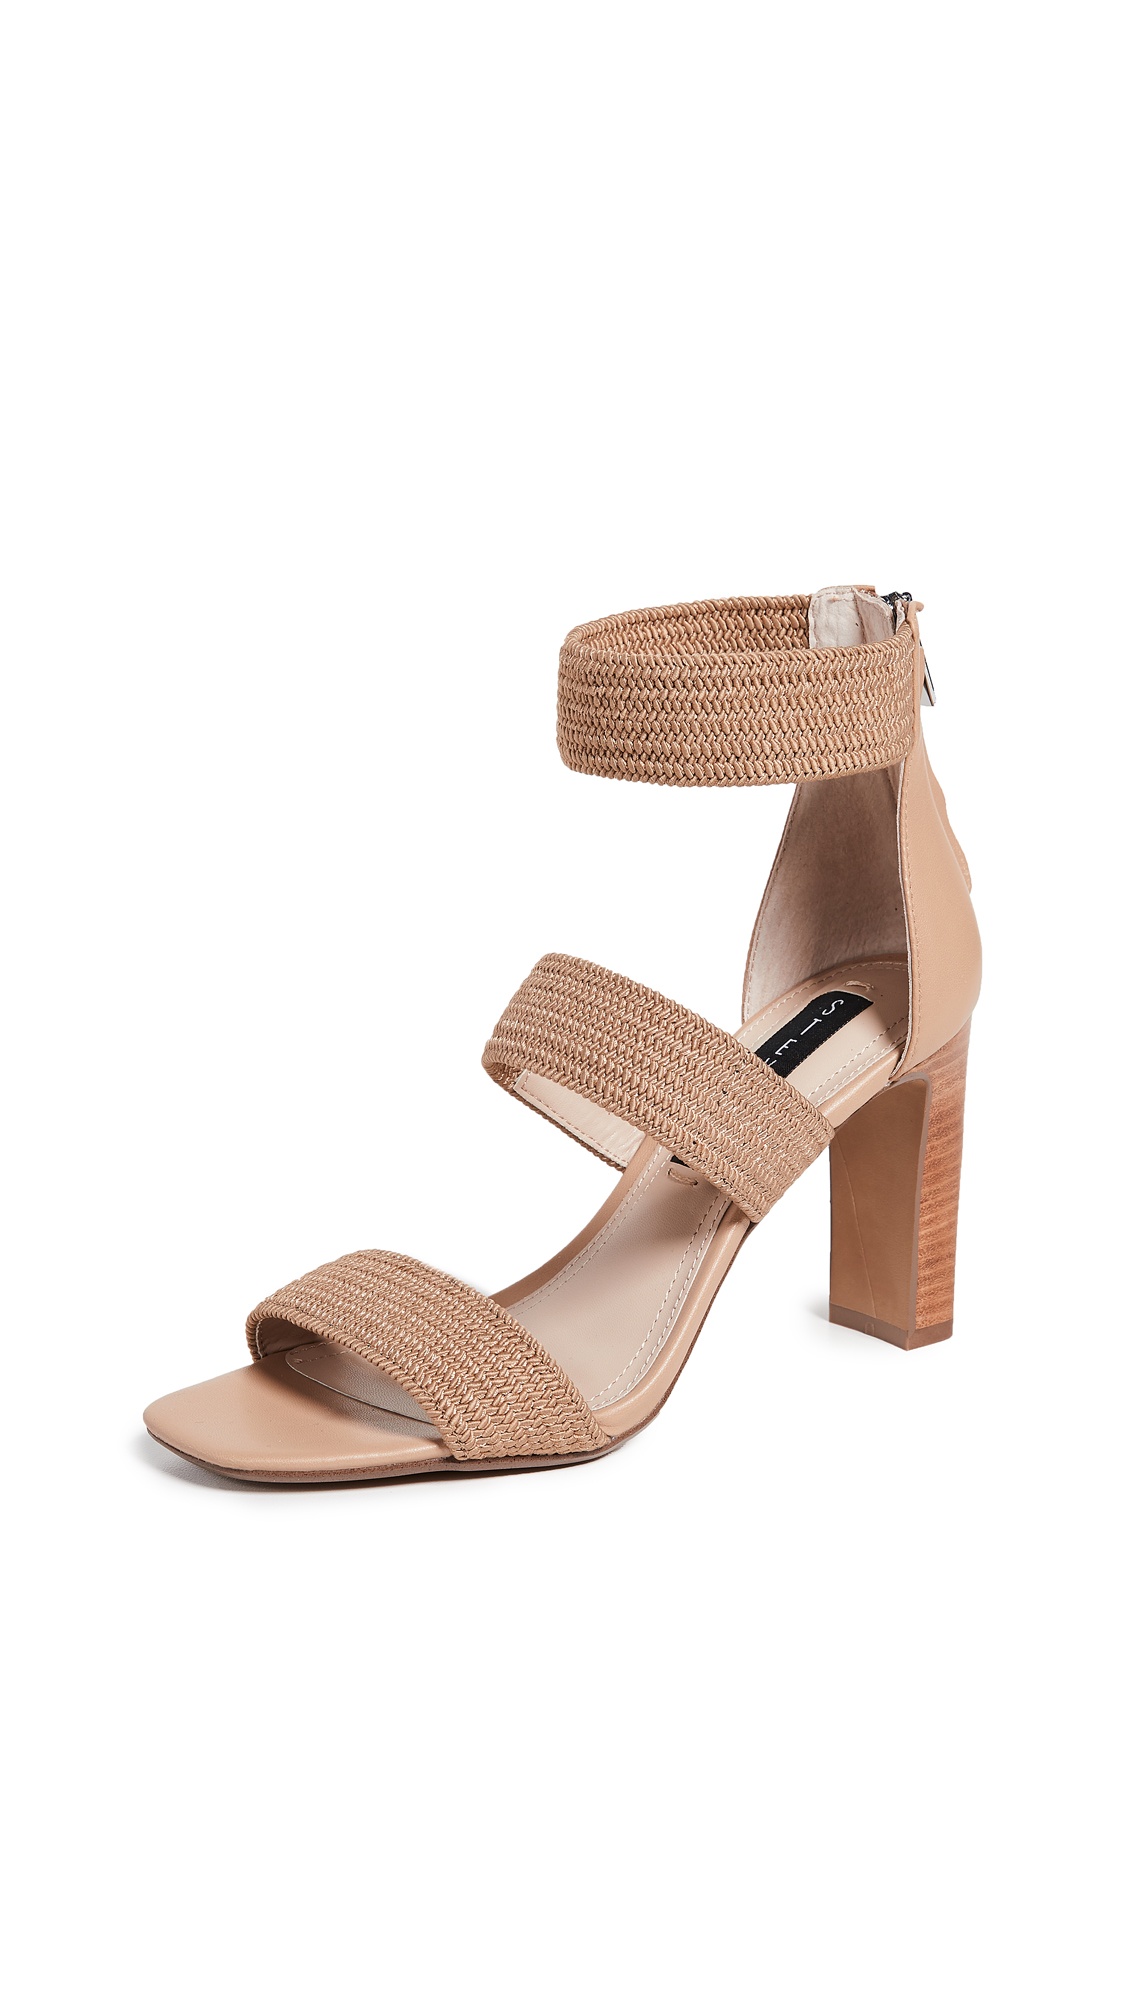 Steven Jelly Strappy Sandals - Natural